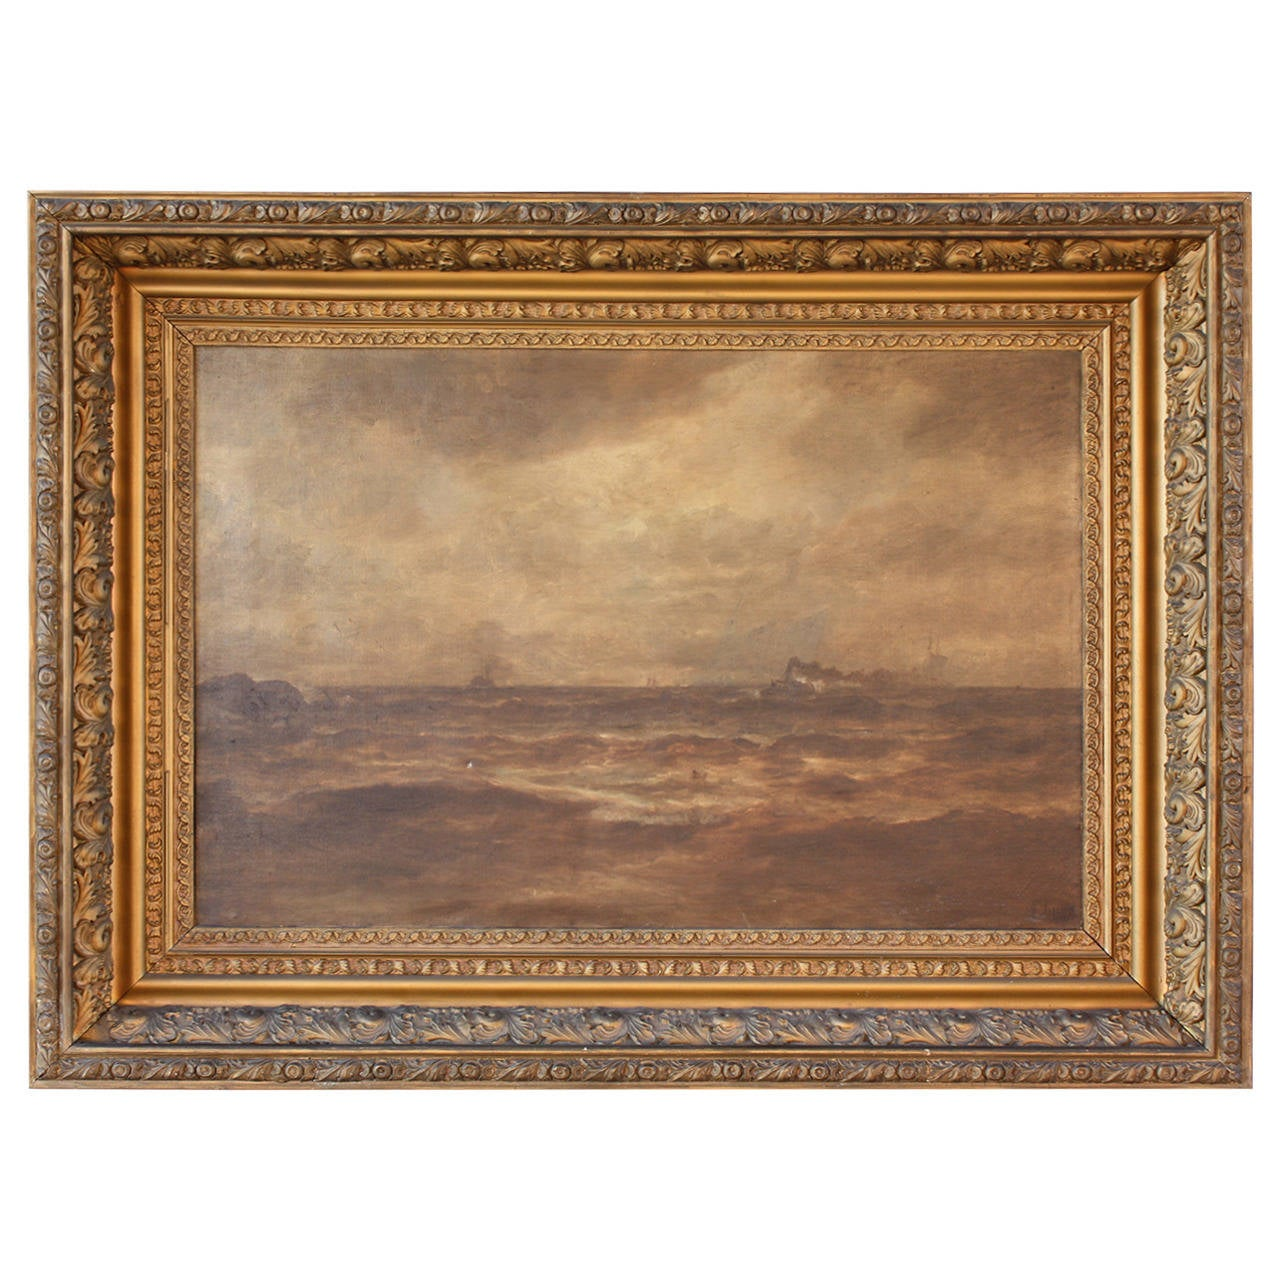 19th Century Seascape with Steam Ship by P F Lund